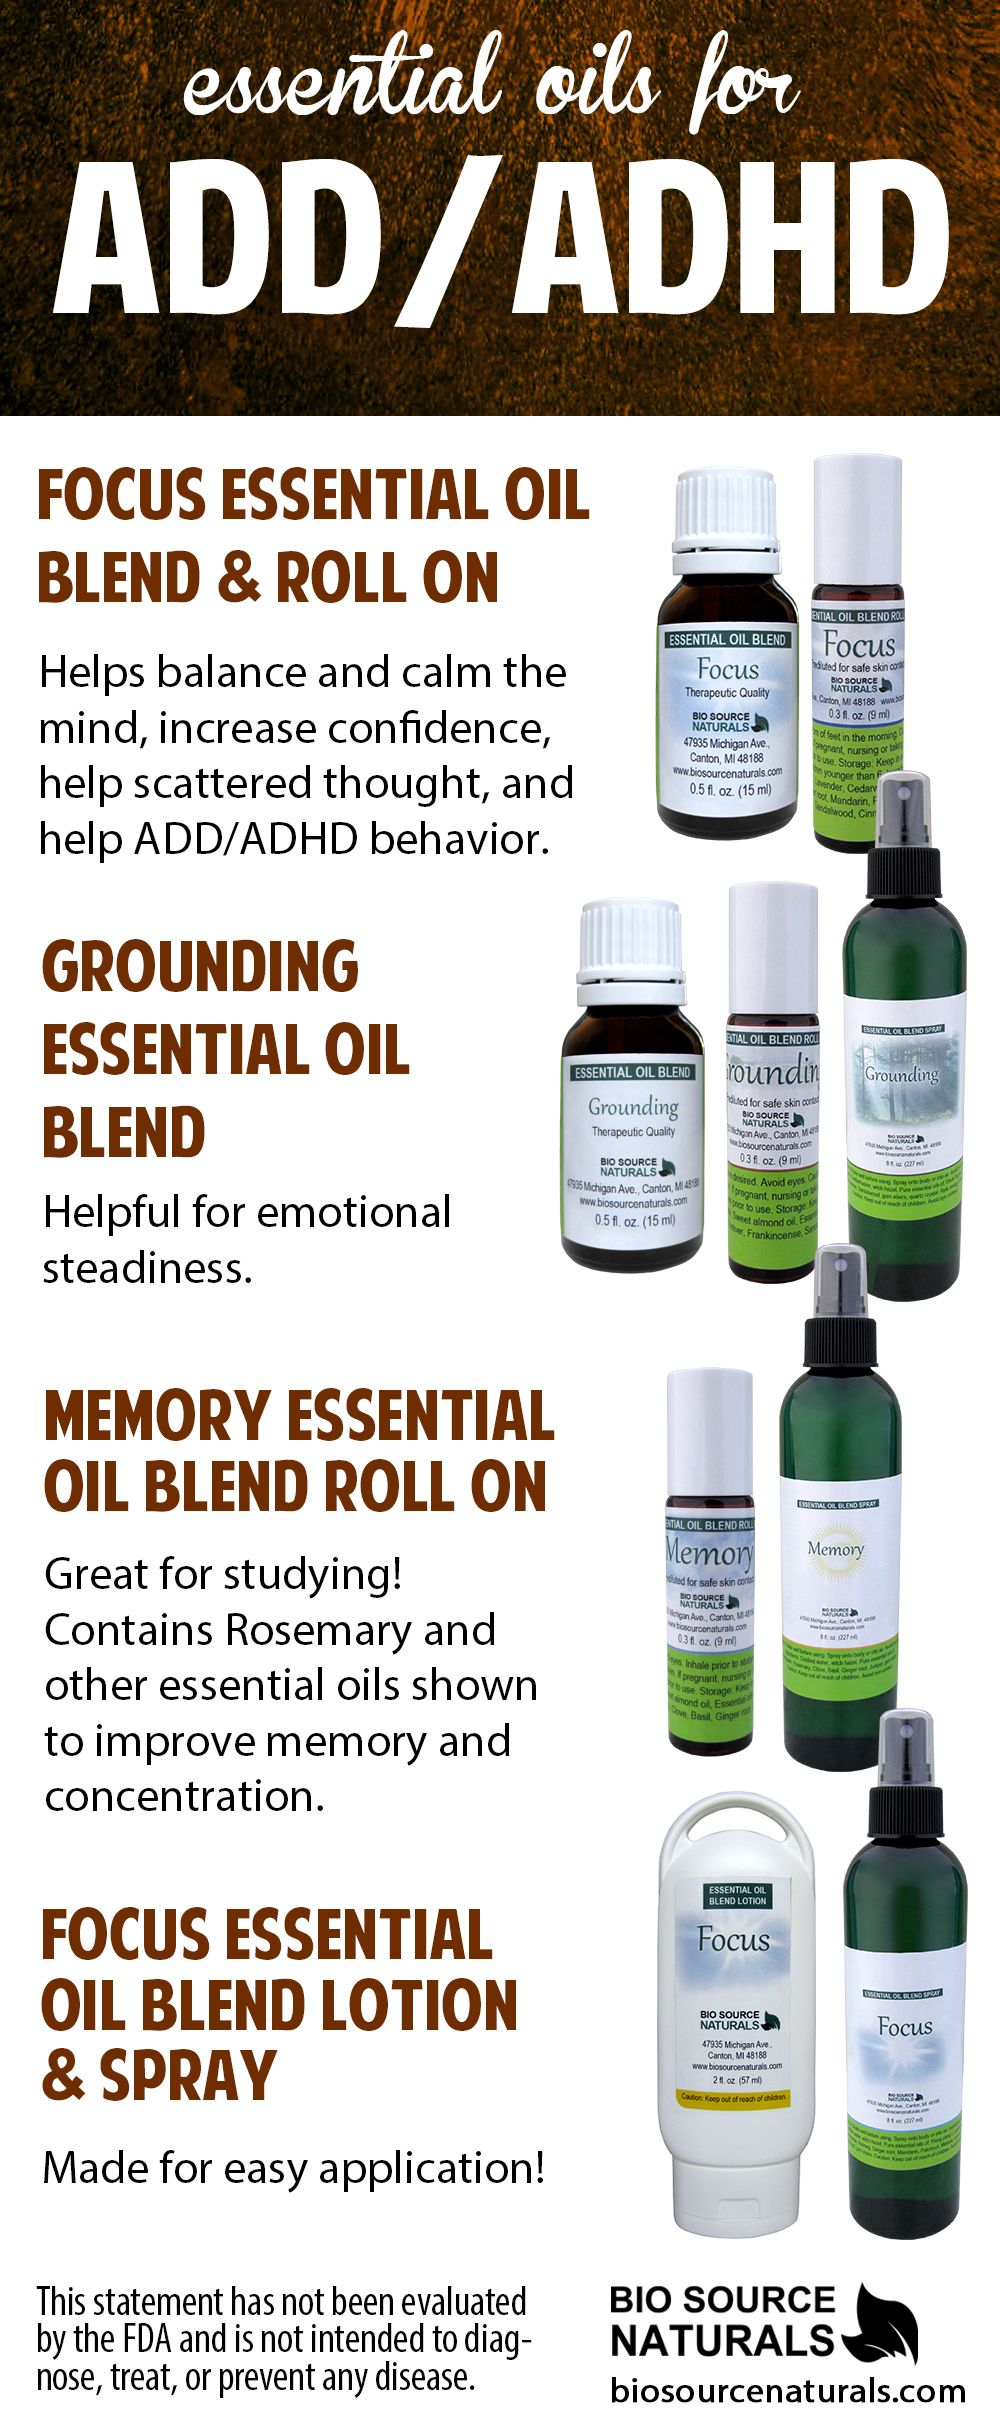 If you or someone you know struggle with ADD/ADHD, these essential oils could be for you! #ADHD #aromatherapy